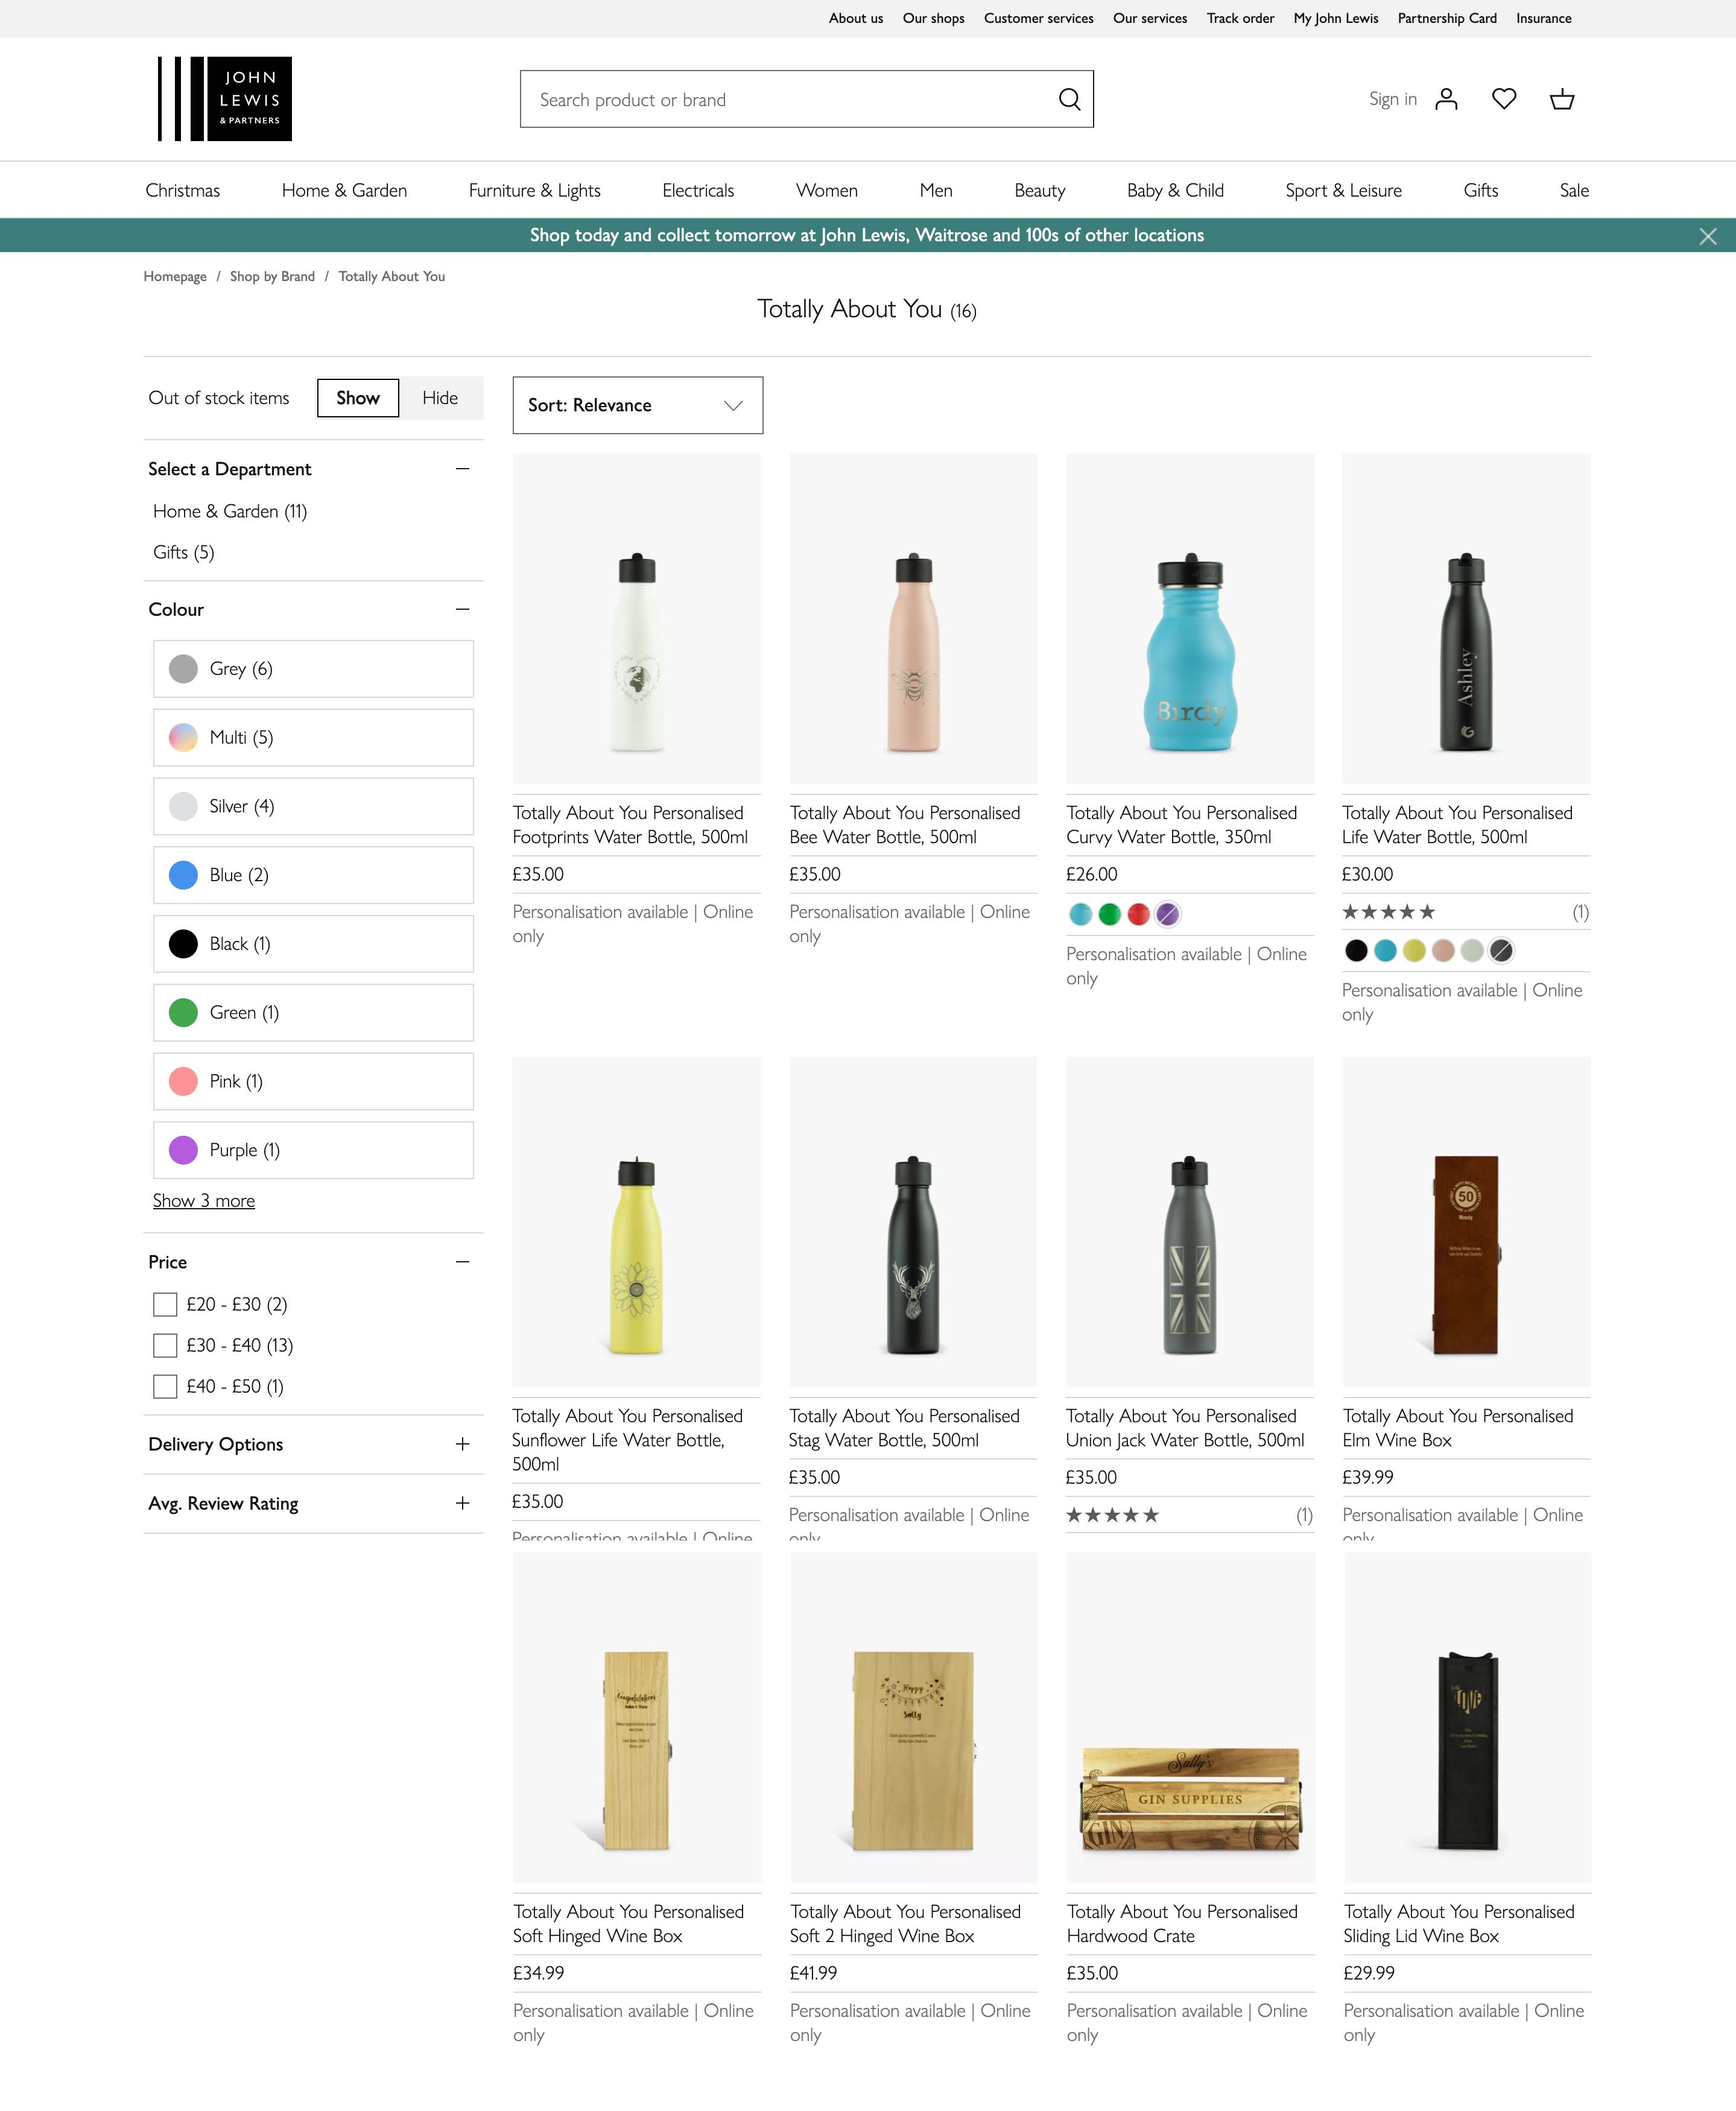 John Lewis Products online Totally About You